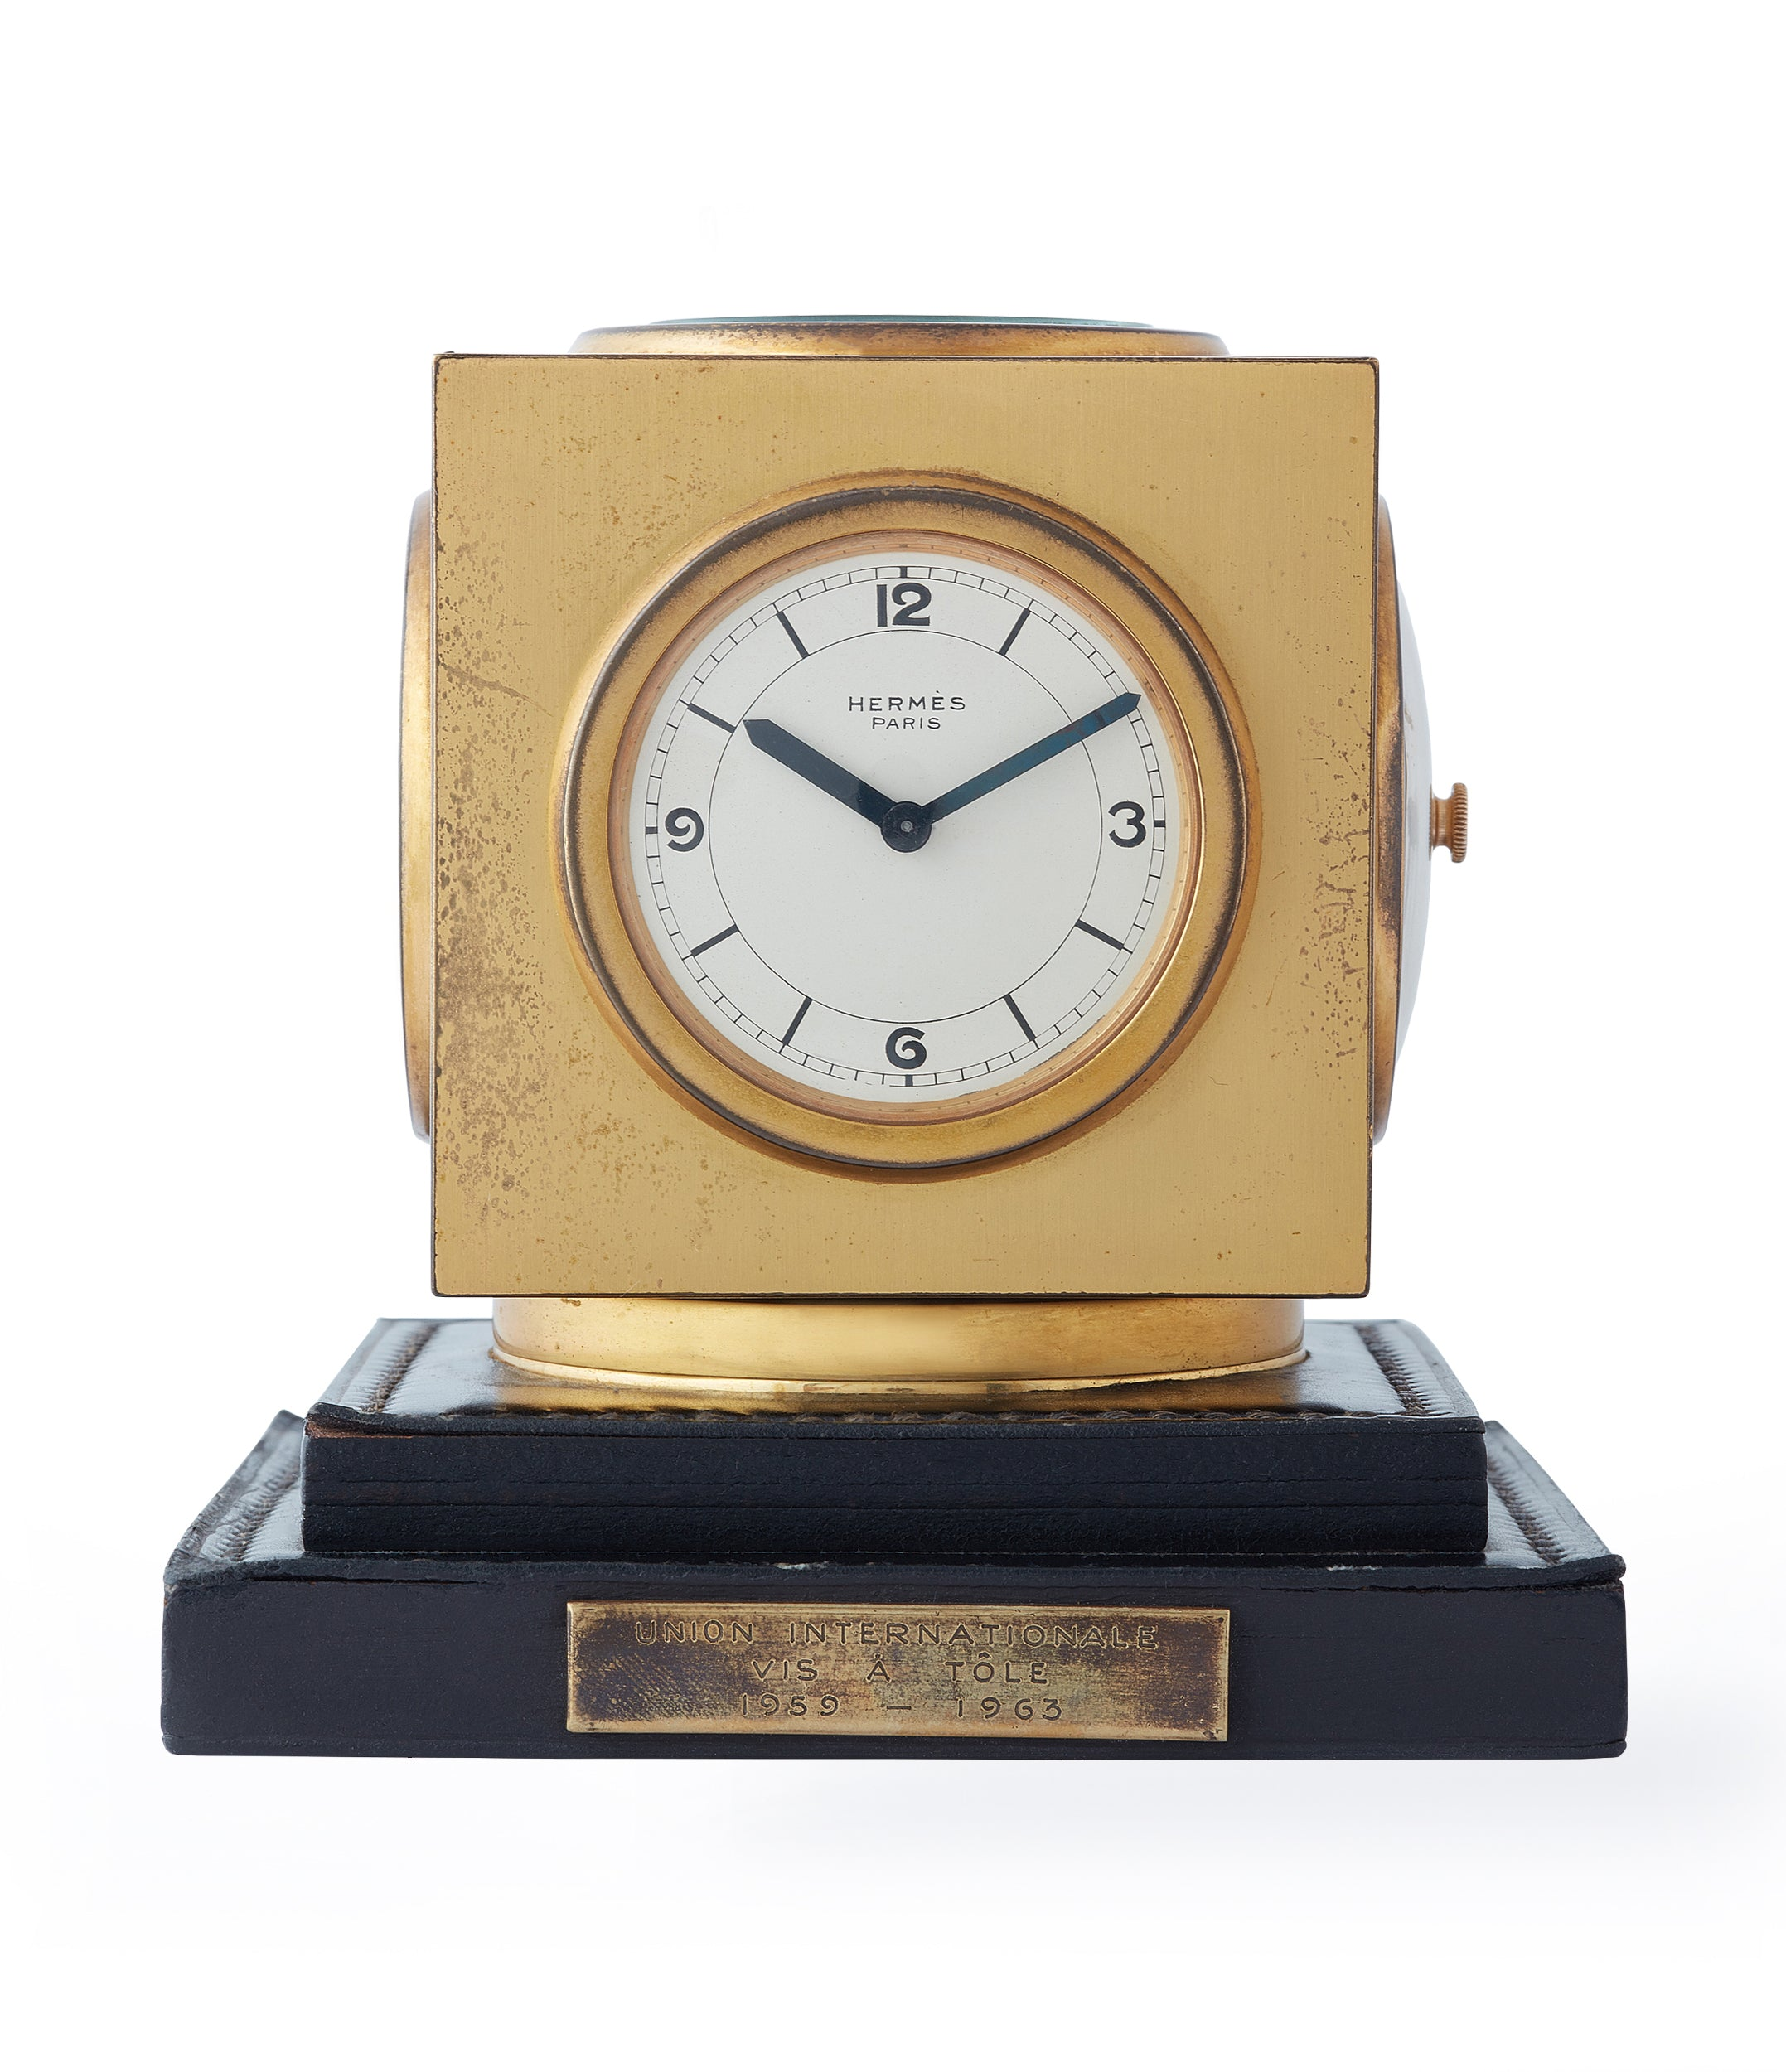 buy vintage Hermes Paris Compendium 8-day Art Deco brass calendar desk clock for sale online at A Collected Man for collectors of rare objects